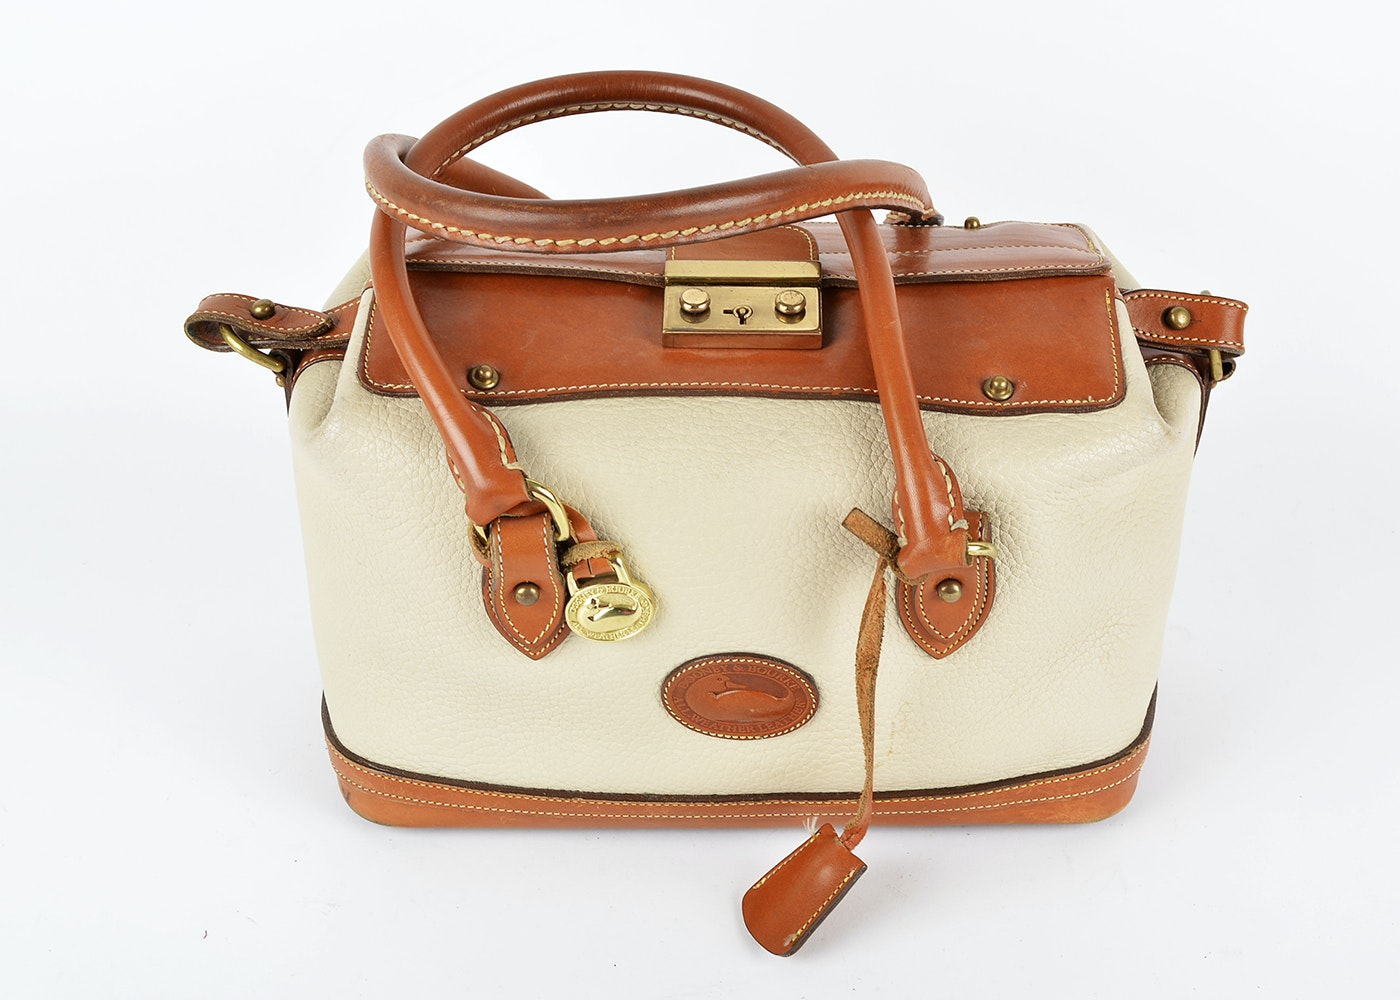 designer purse sale zn4e  Dooney & Bourke Tan Leather Doctor's Handbag